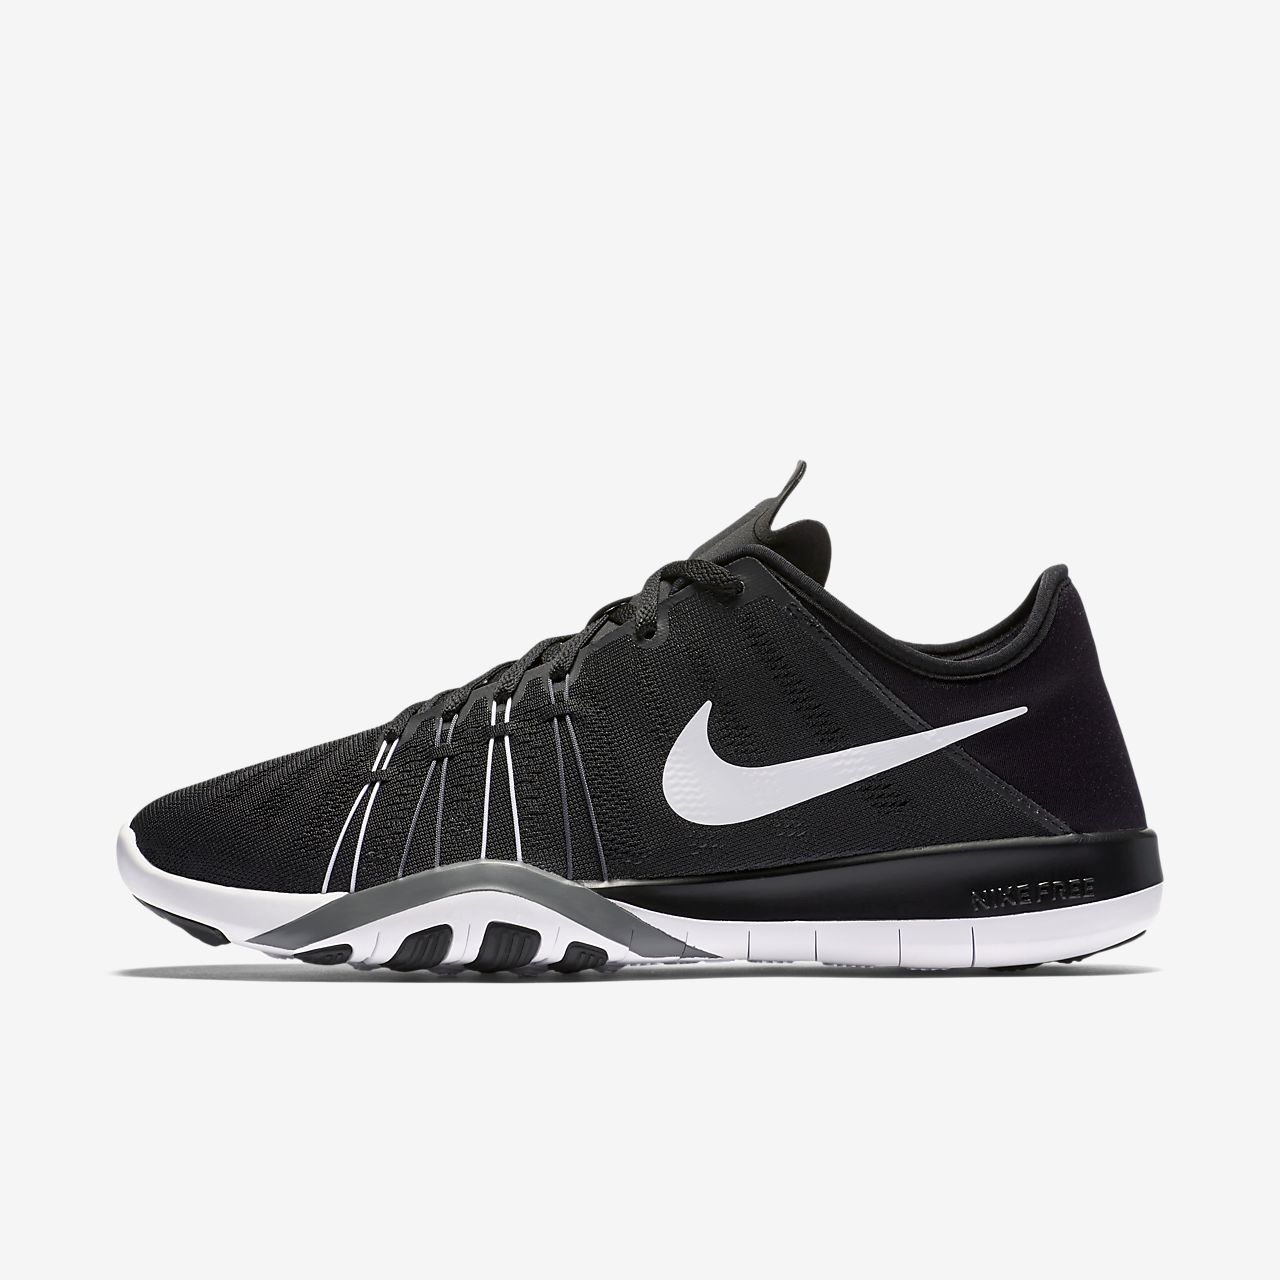 Women's Nike Free TR 6 Training & Running Shoes Size 10